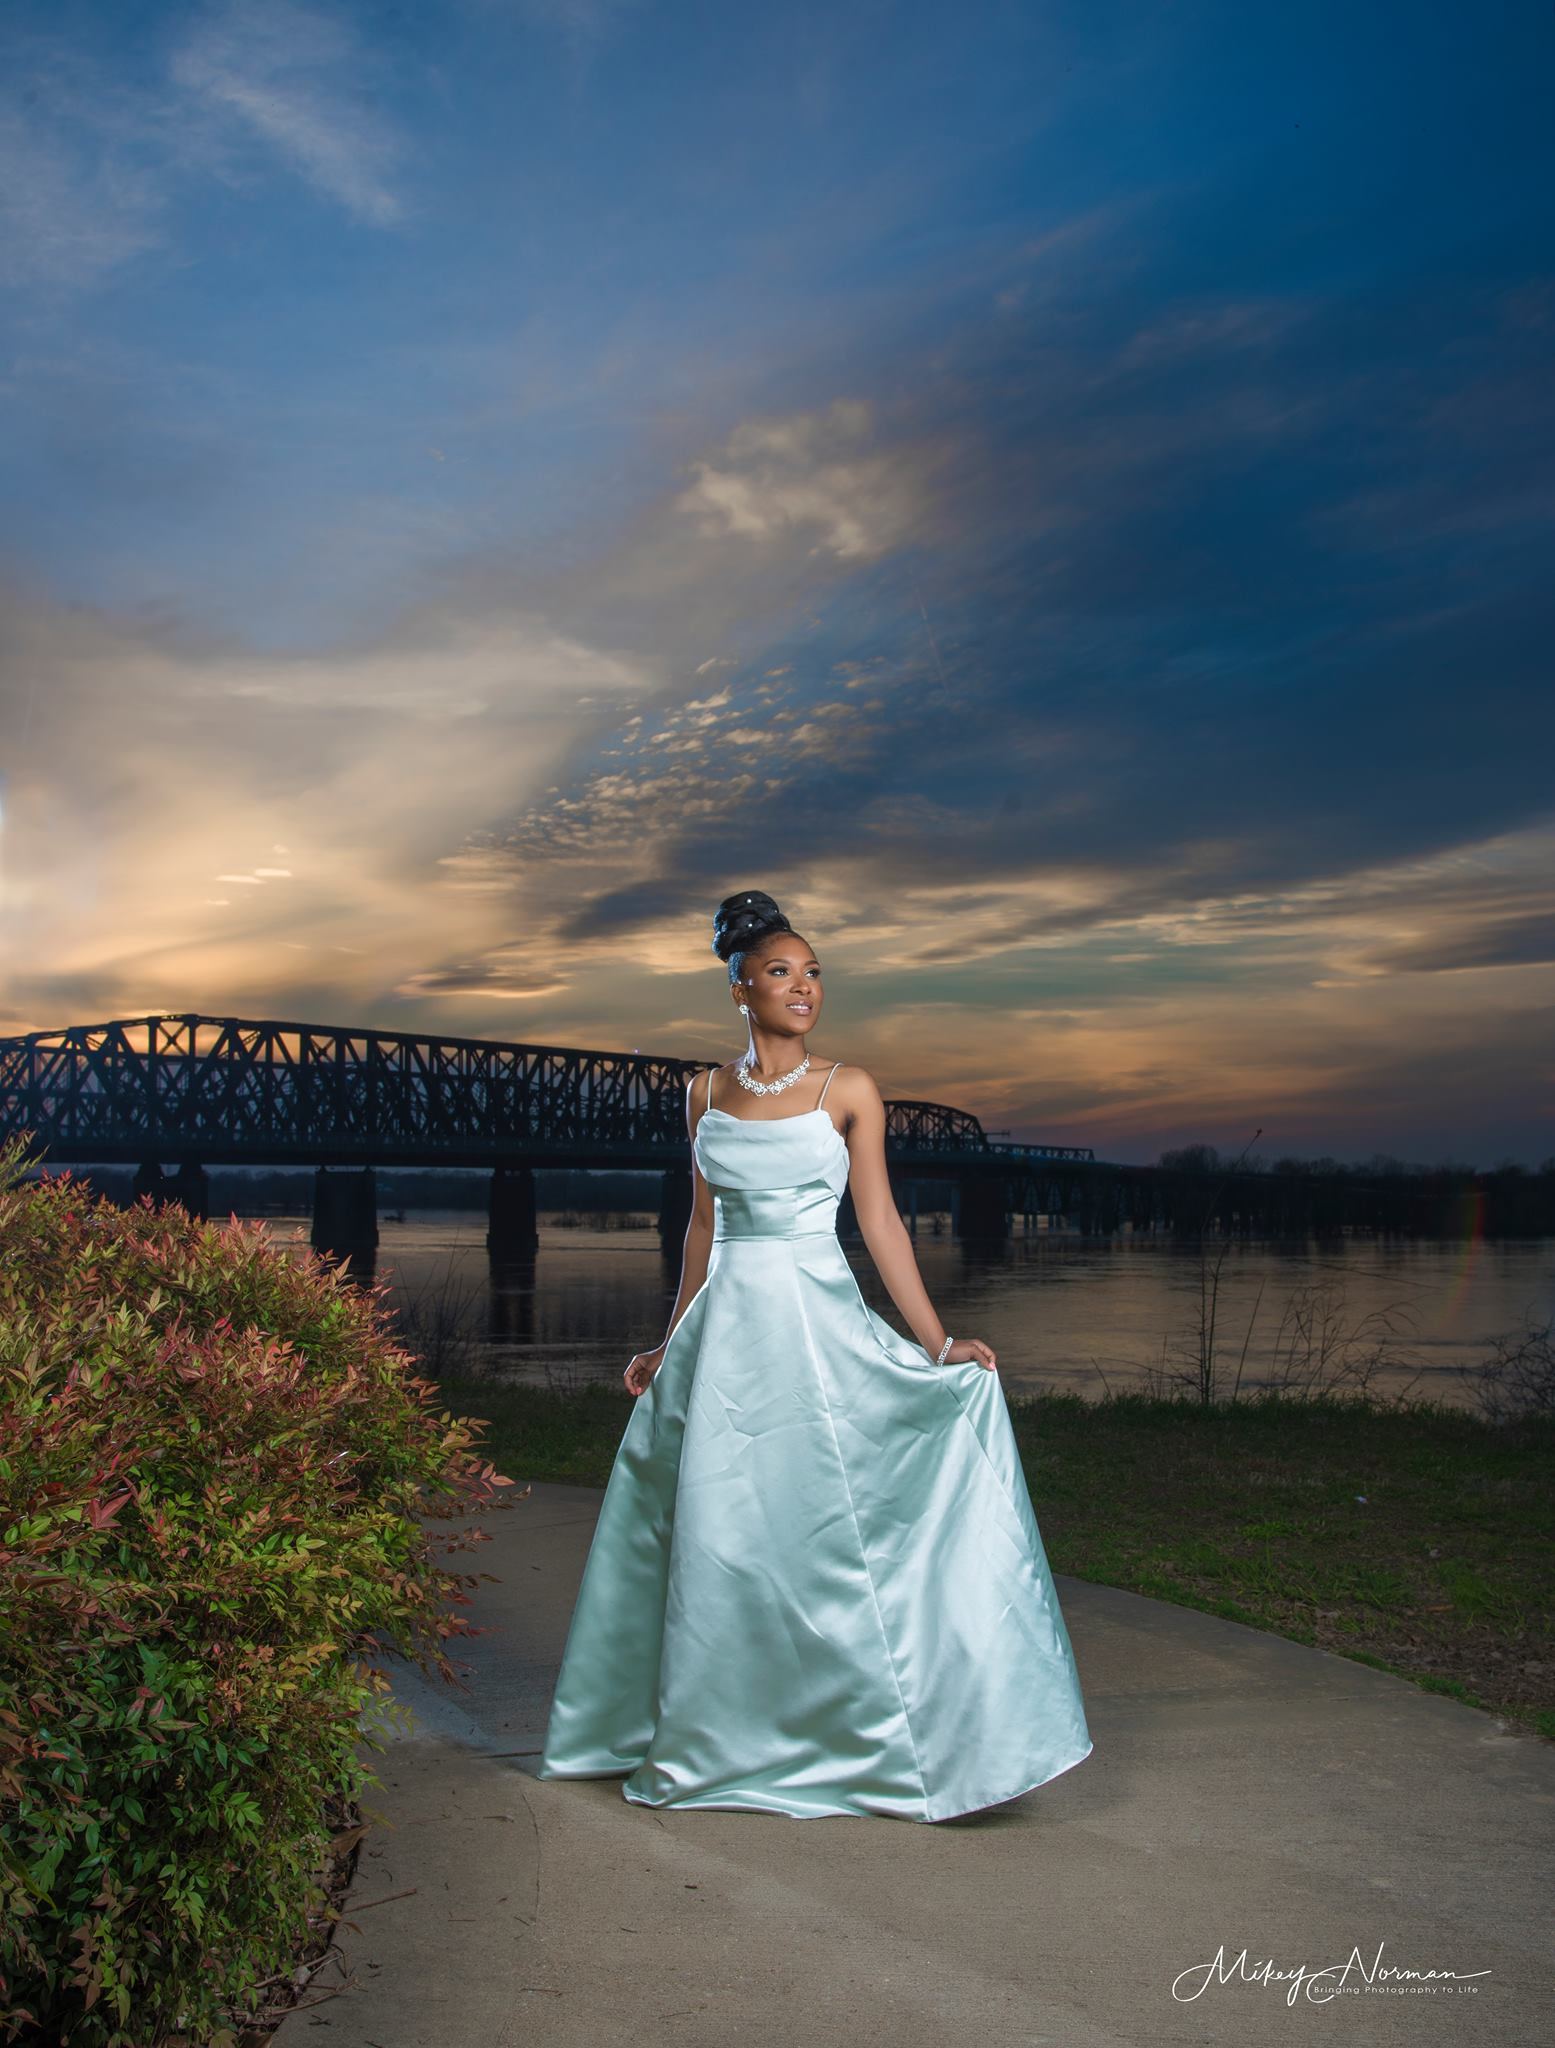 Example of Michael Norman photograph, a woman with Memphis bridge in the background